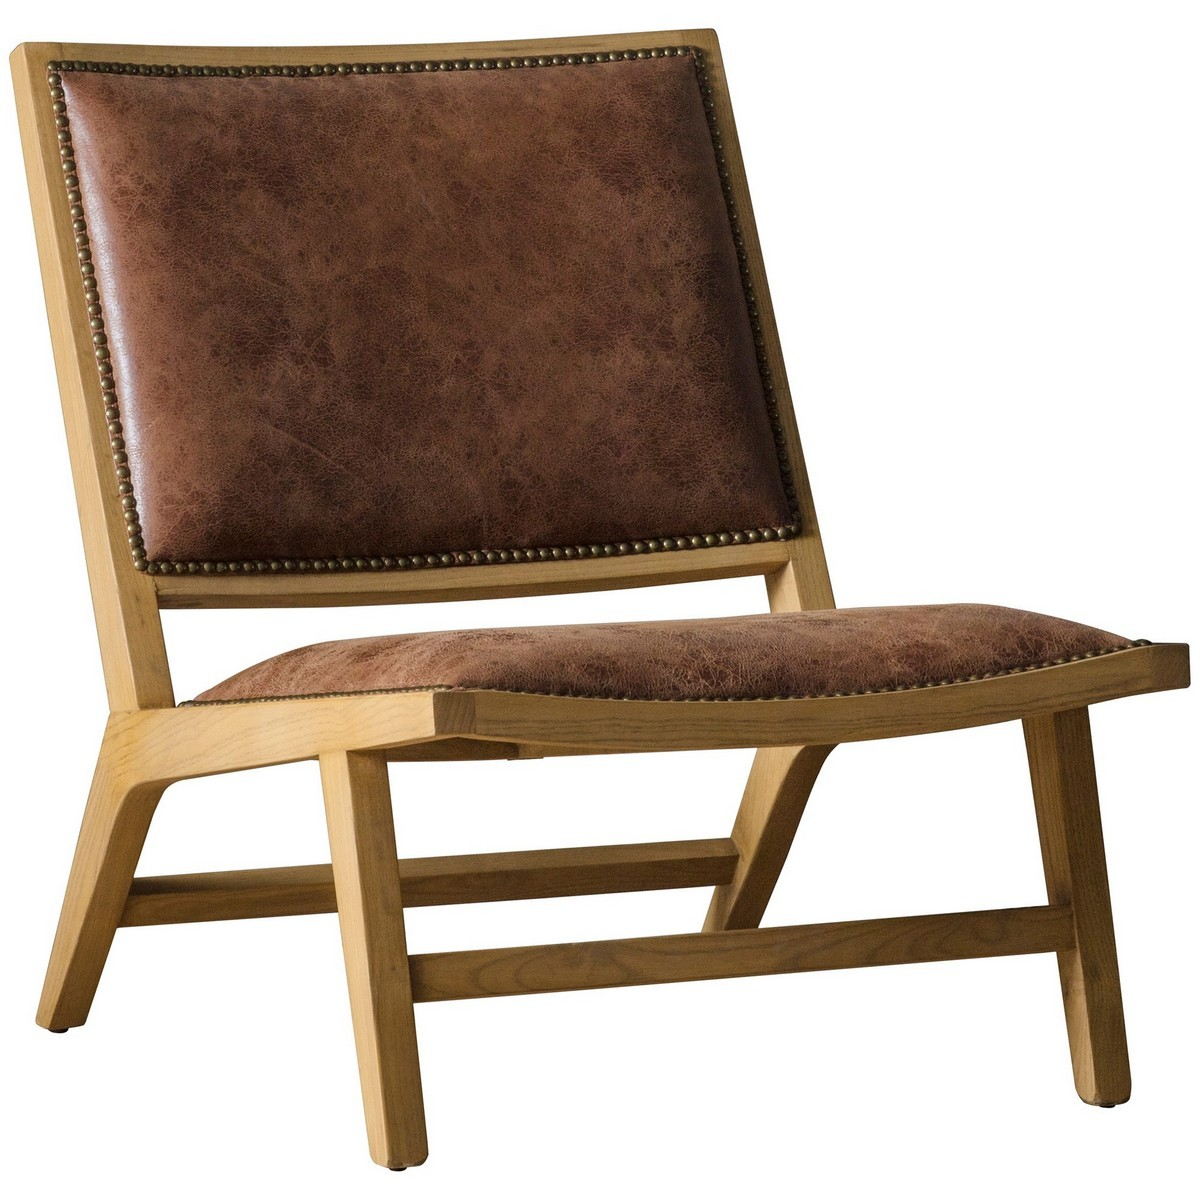 Carnaby Leather & Ash Timber Lounge Chair, Tan